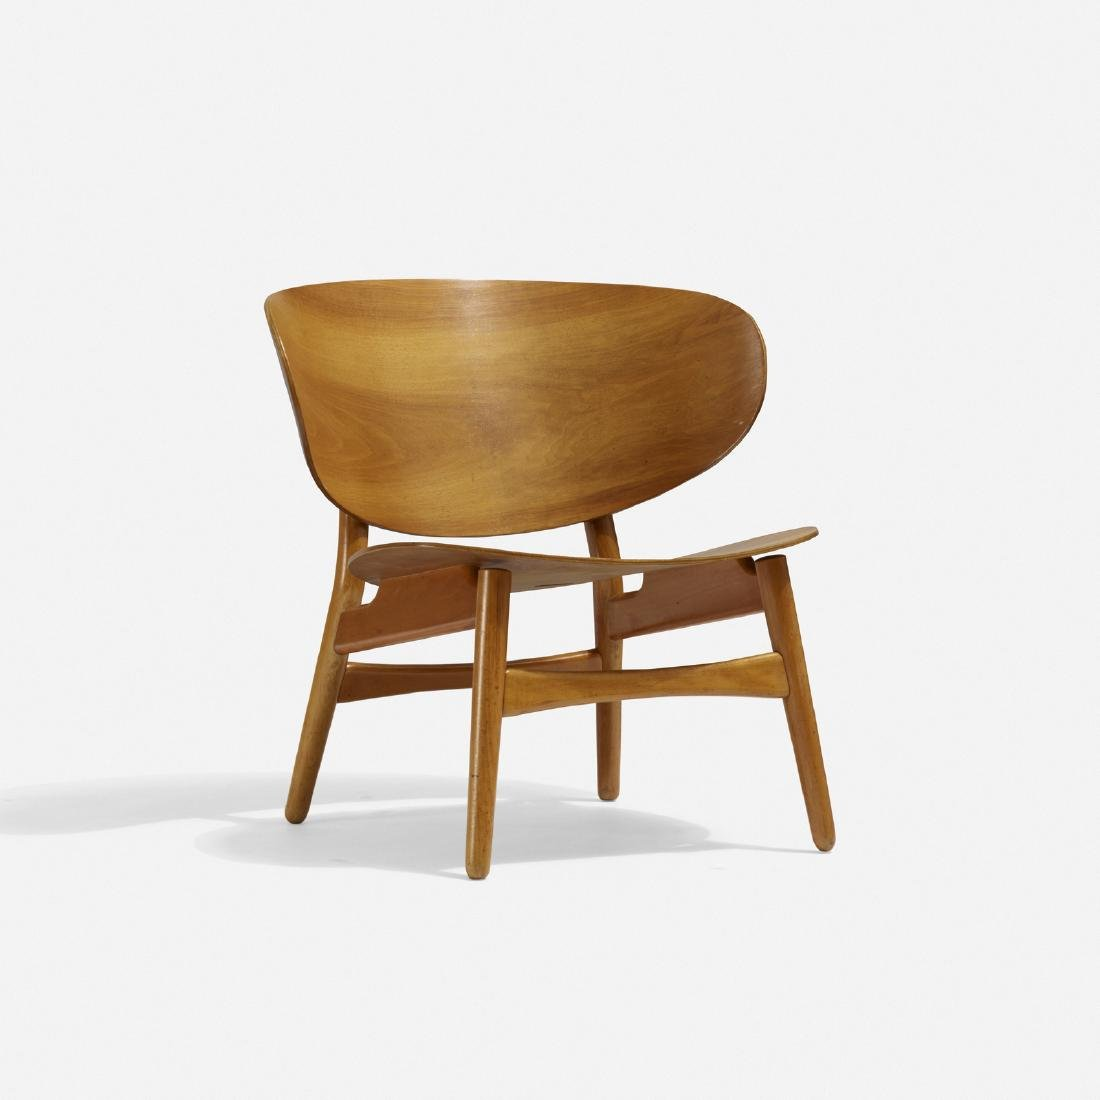 Hans J. Wegner, Shell chair